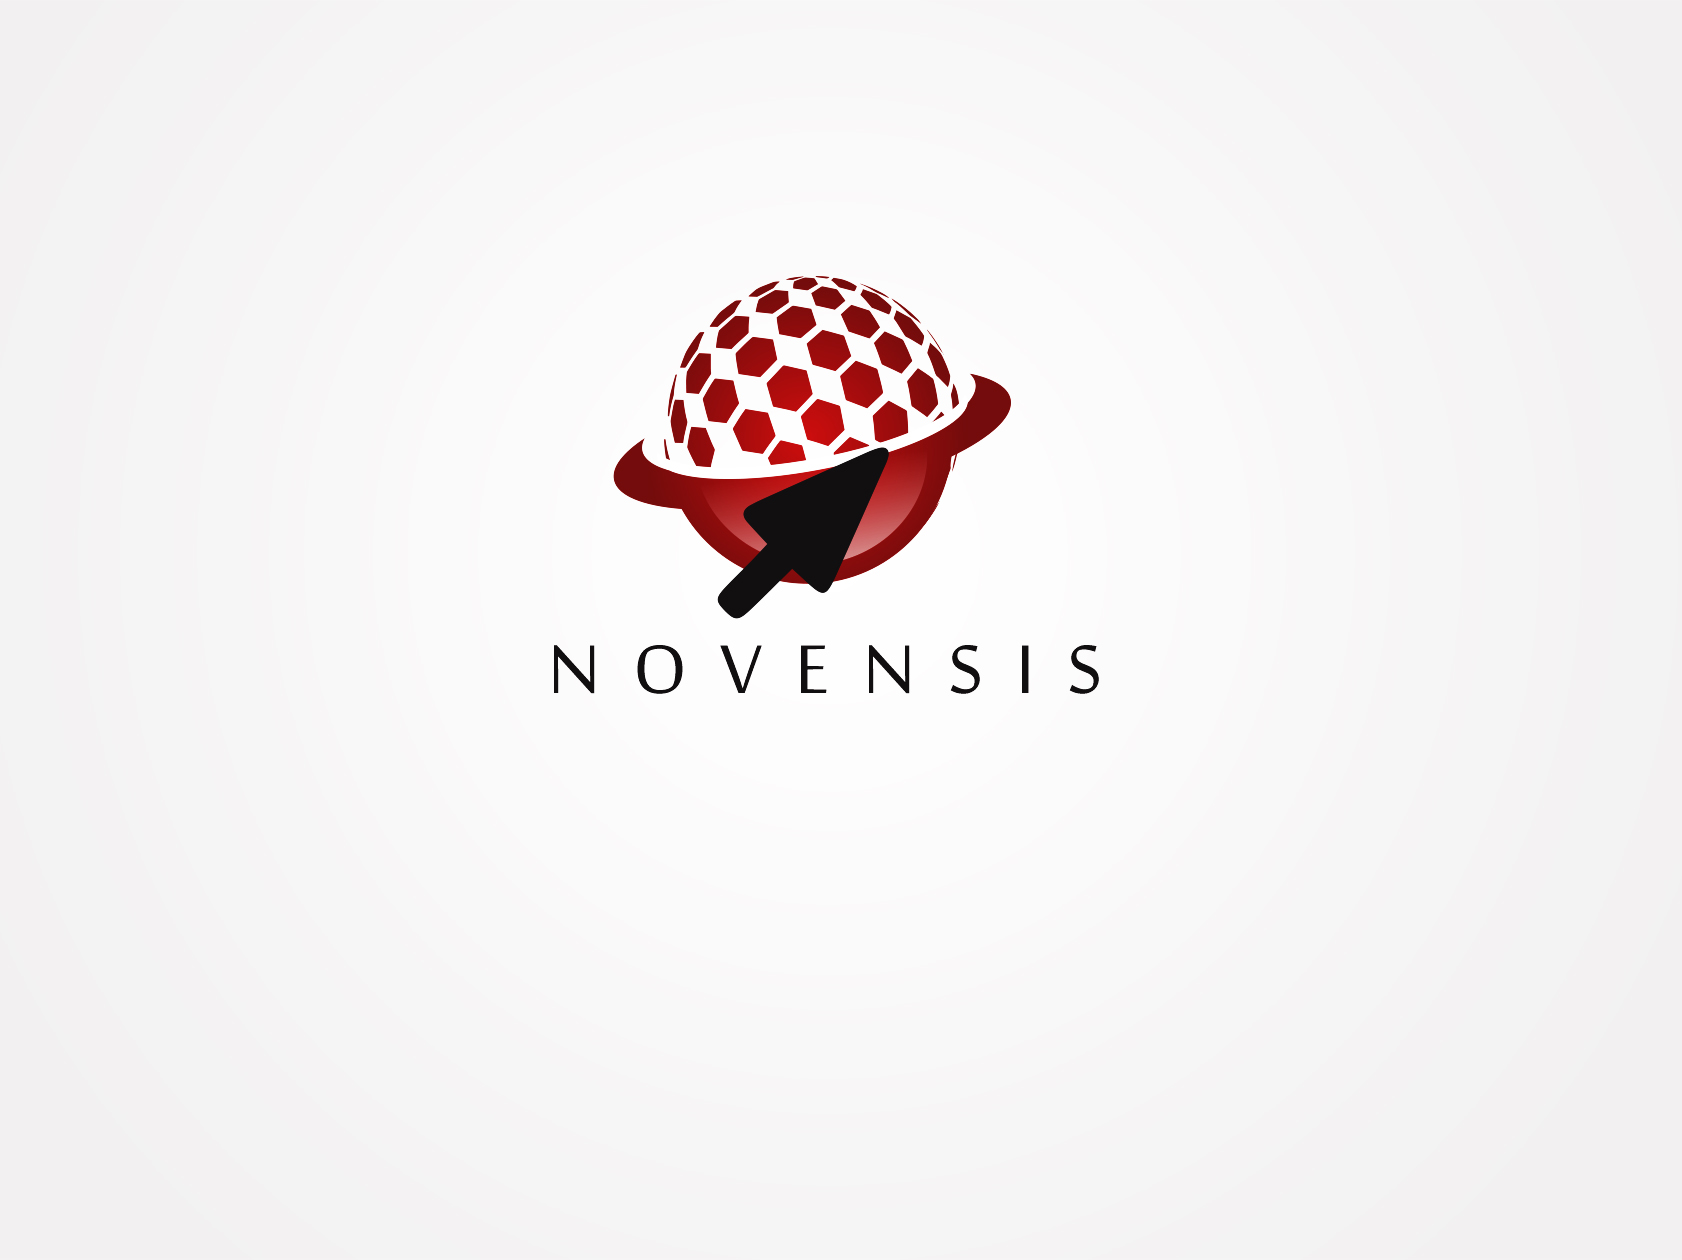 Logo Design by OmegaDesigns - Entry No. 121 in the Logo Design Contest Novensis Logo Design.